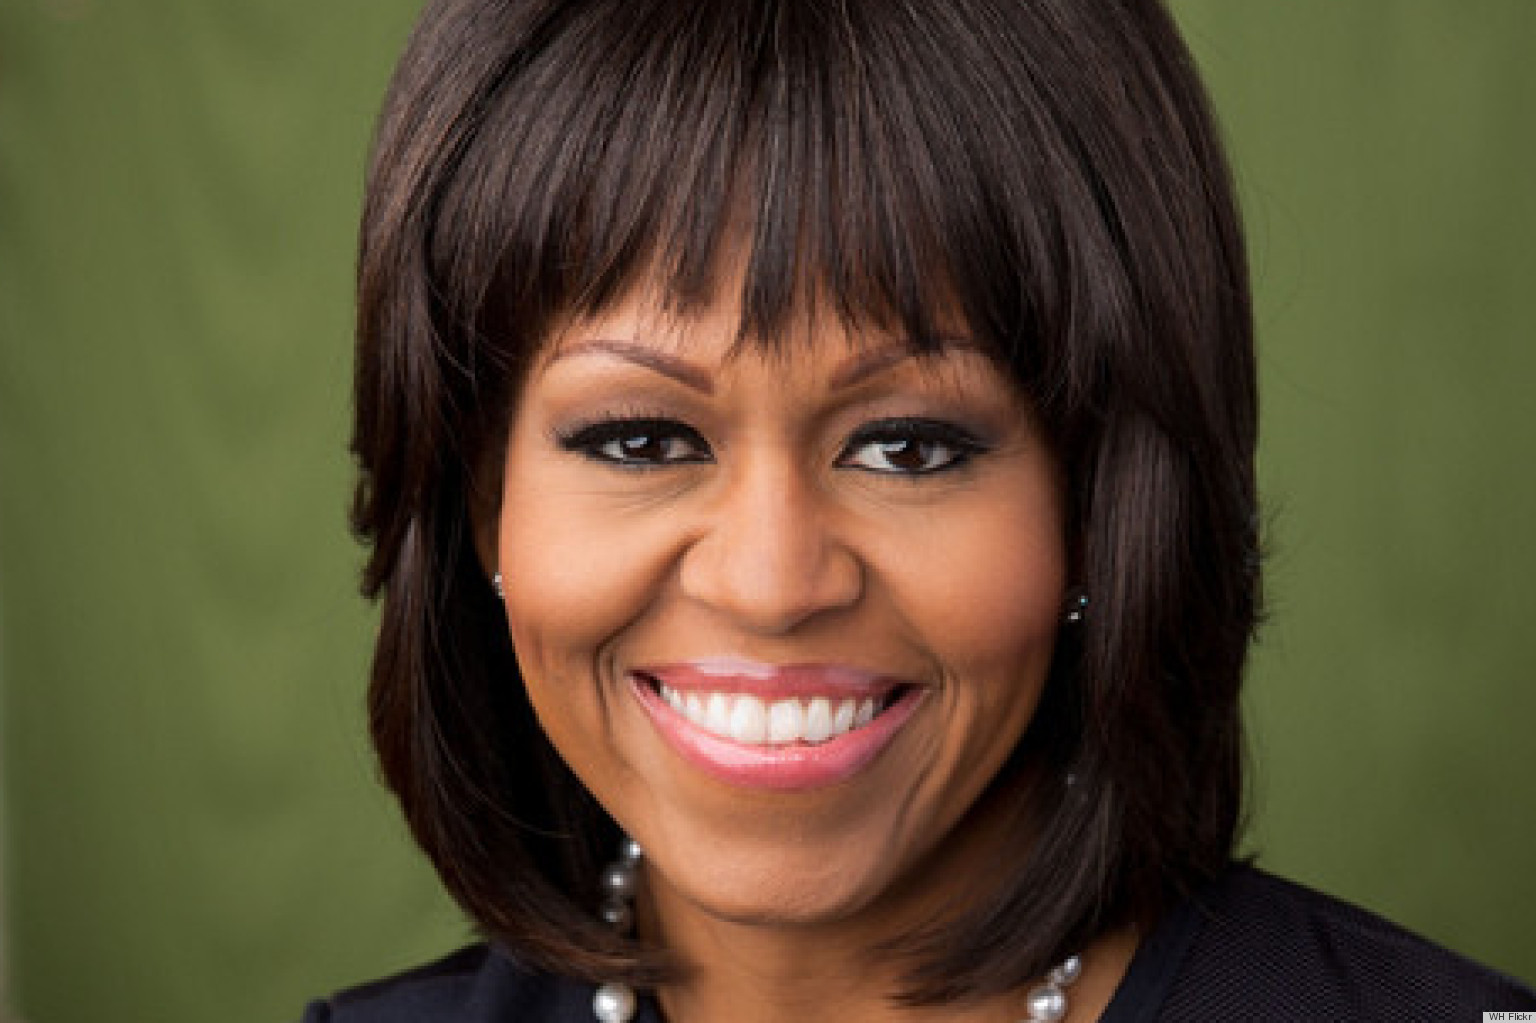 Michelle Obama's Classic Cut Top 10 Most Popular Female Celebrity Hairstyles of all Time - Hit List